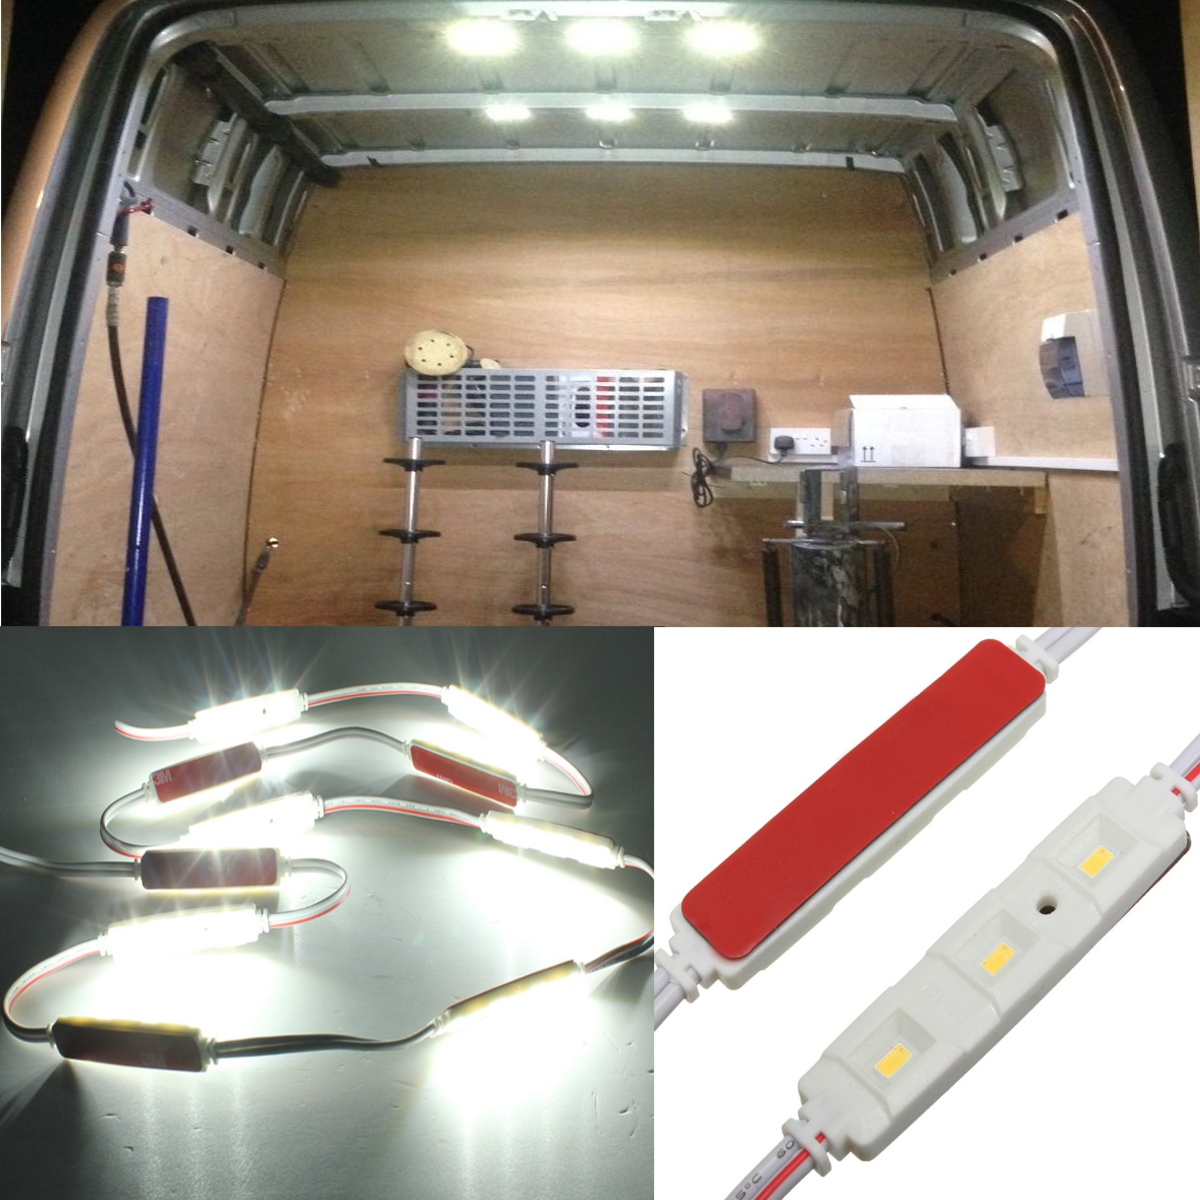 3 led car interior light for lwb van lorries sprinter ducato transit 12v diy alex nld. Black Bedroom Furniture Sets. Home Design Ideas